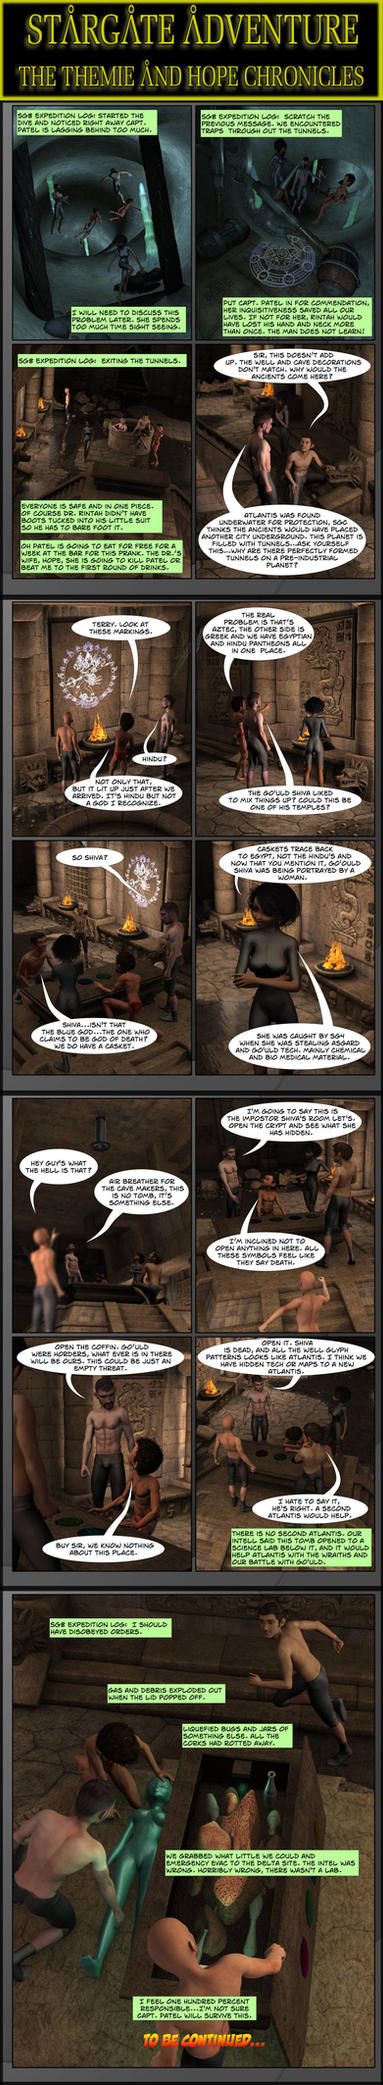 Stargate - Blood Virus 2nd strip by PDSmith